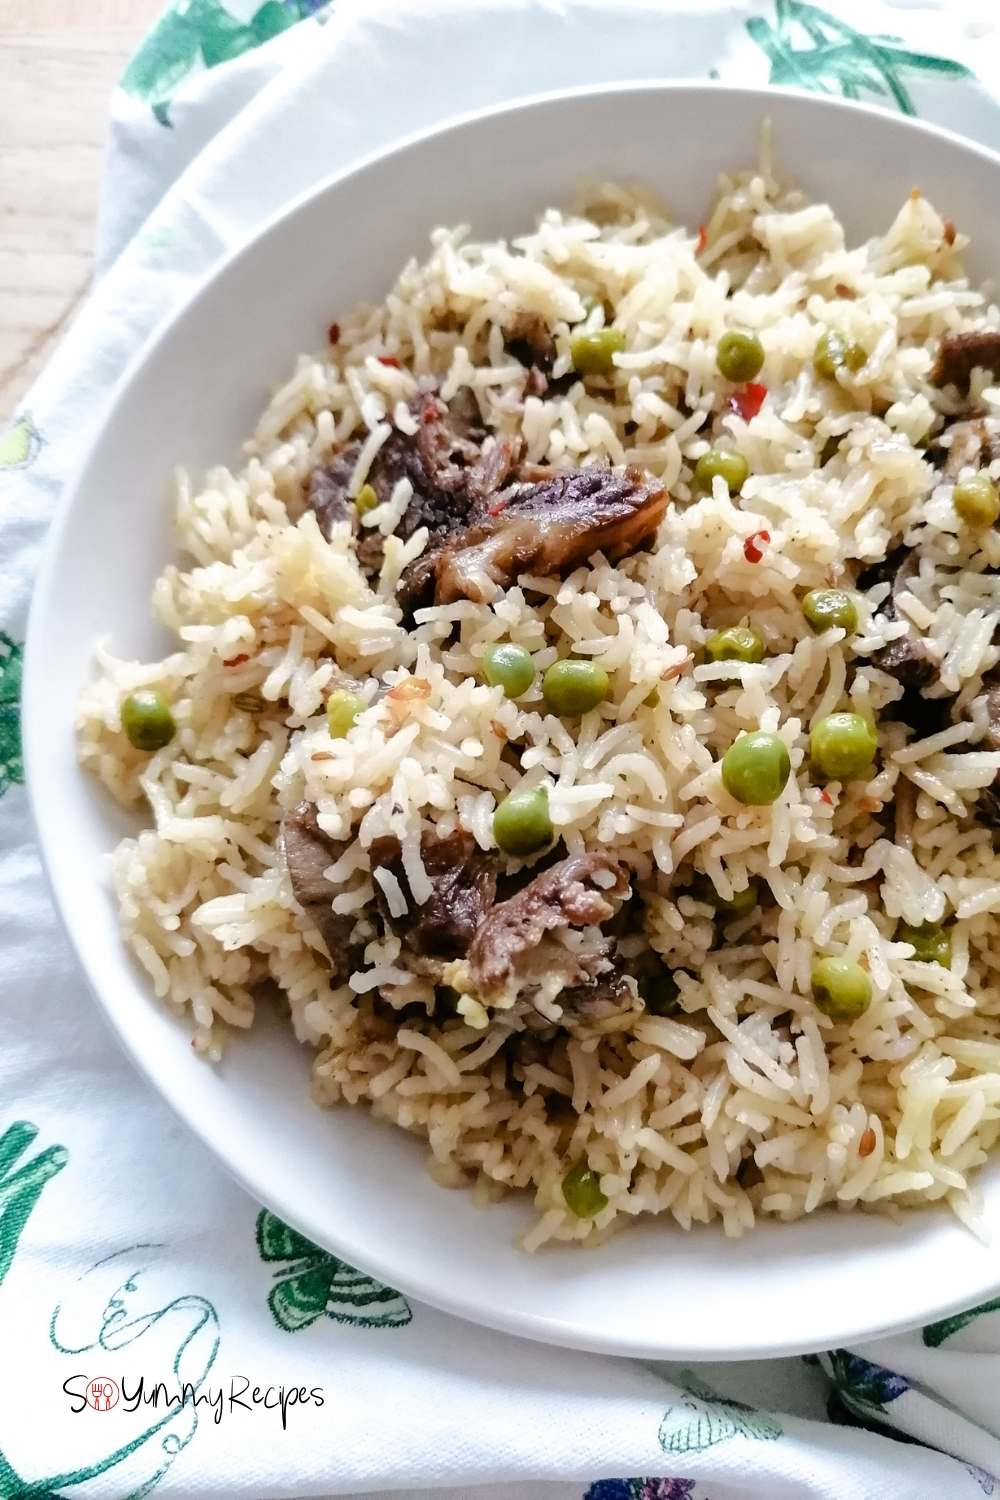 Pakistani Yakhni mutton pulao rice on a white plate with patterned white napkin underneath.